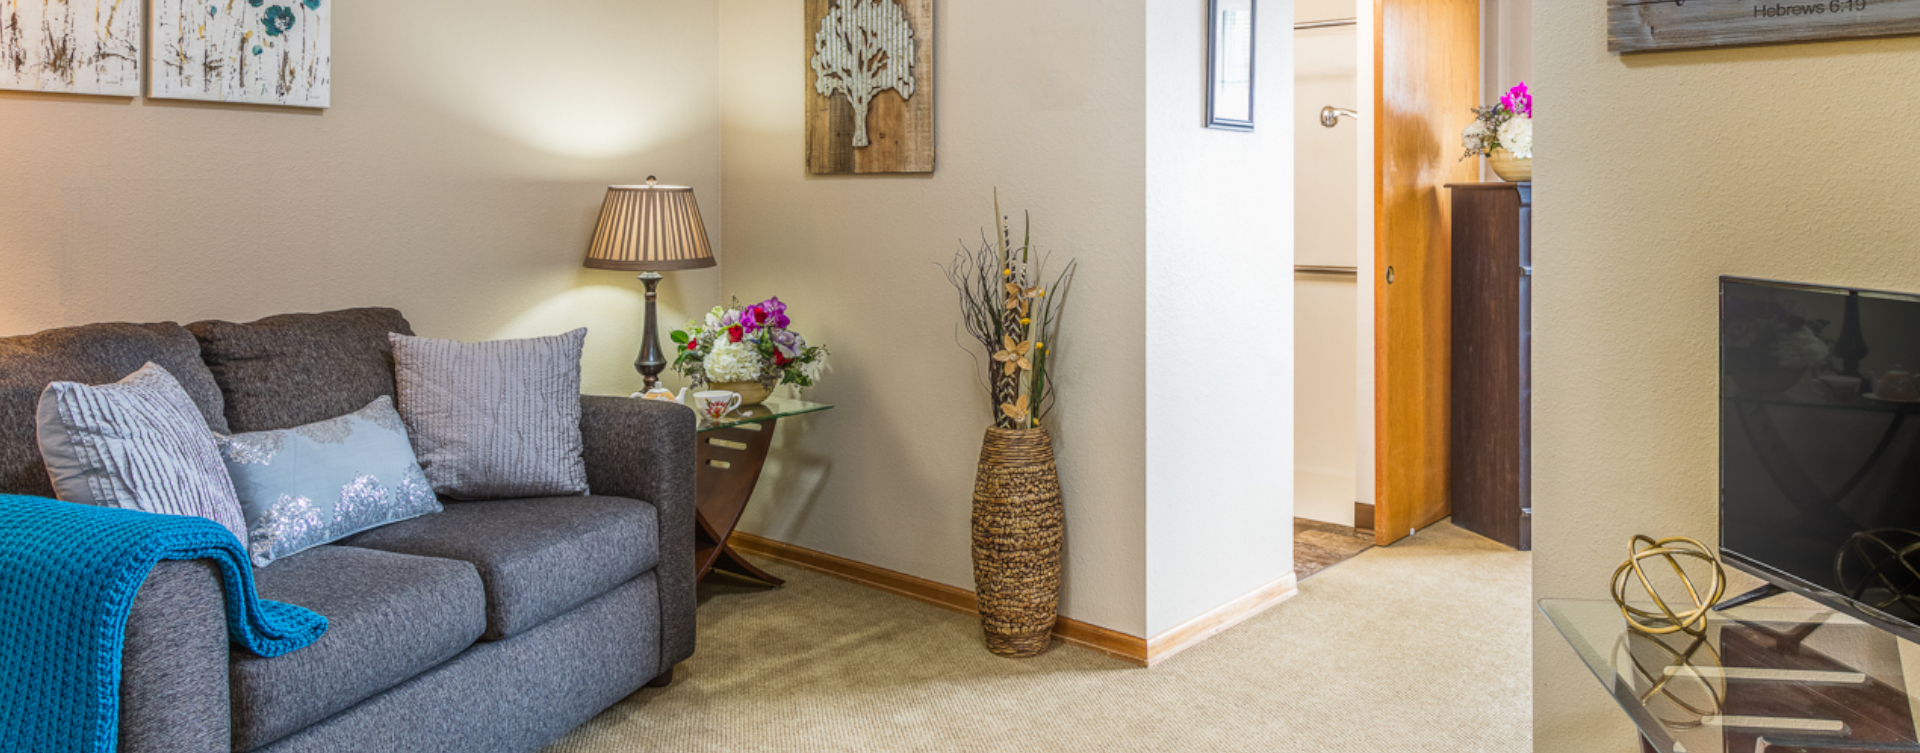 Enjoy senior friendly amenities, personal climate control and security in an apartment at Bickford of Sioux City